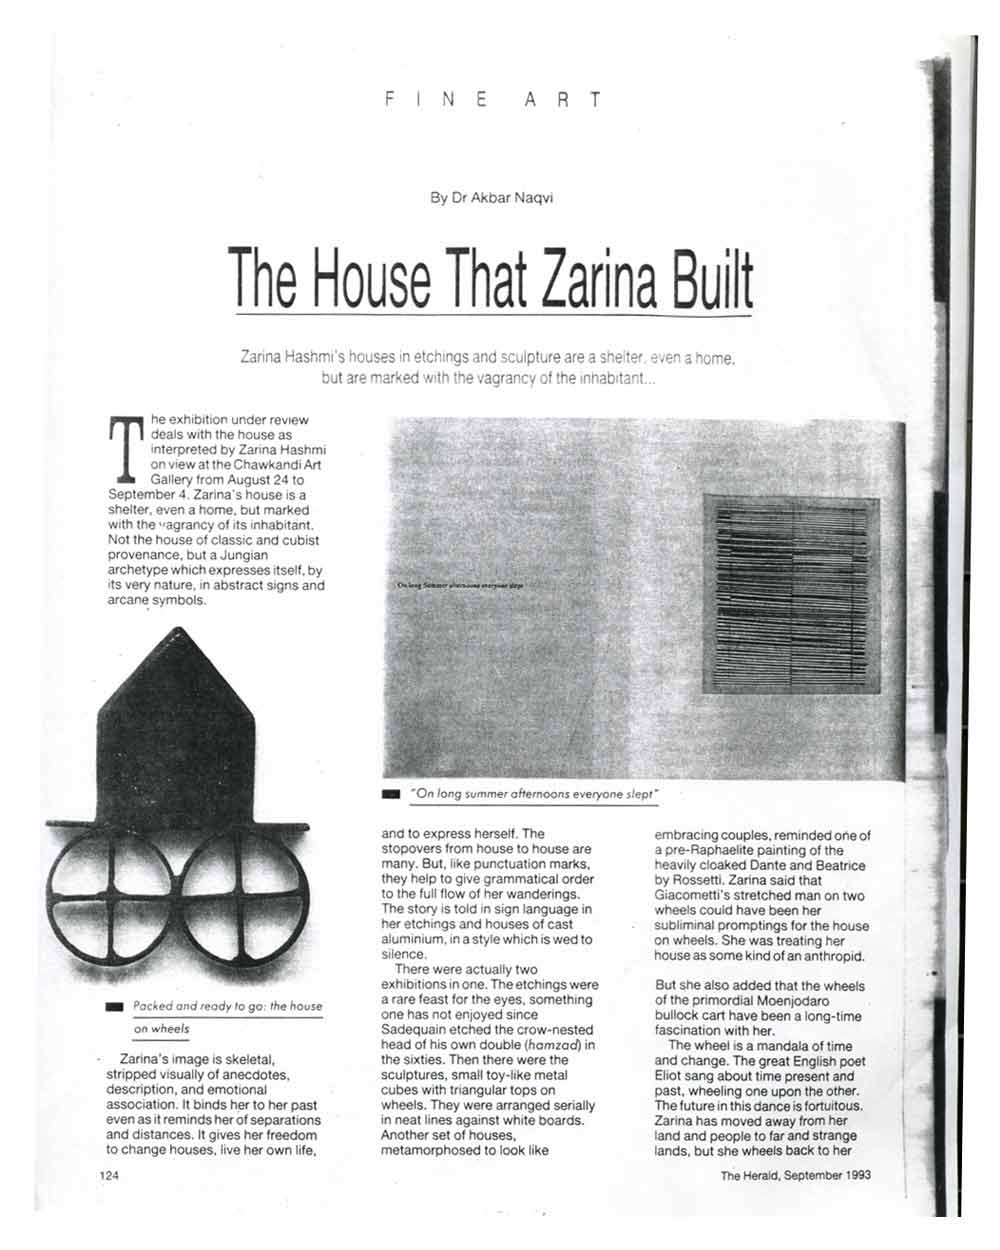 The House That Zarina Built, pg 1